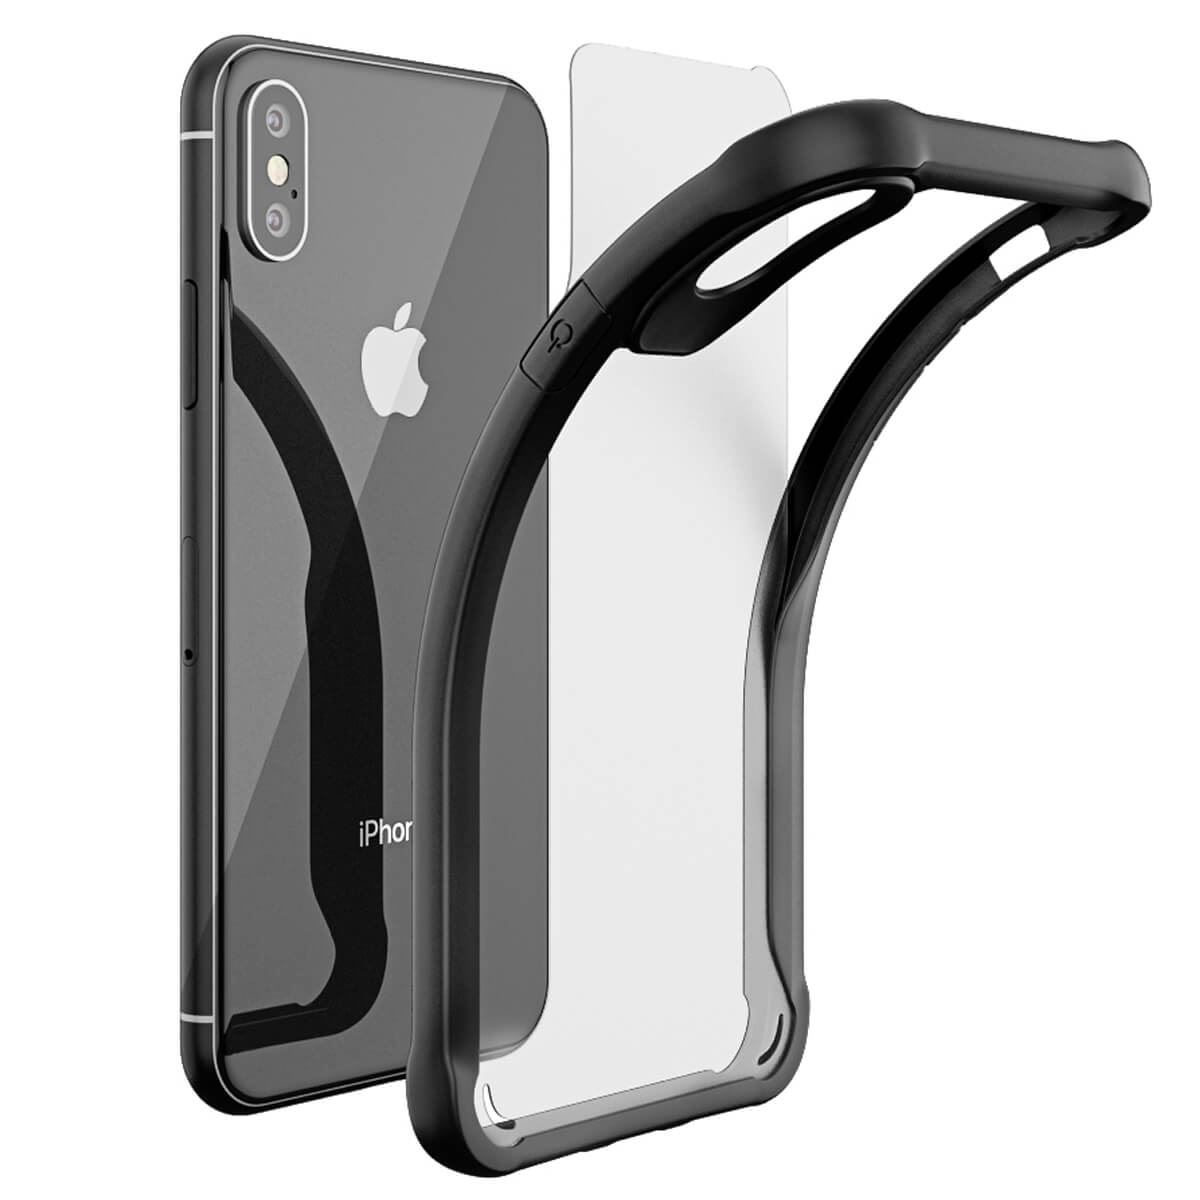 Thin-Shockproof-Case-For-Apple-iPhone-X-8-7-Plus-6s-Clear-Hard-Bumper-TPU-Cover thumbnail 13